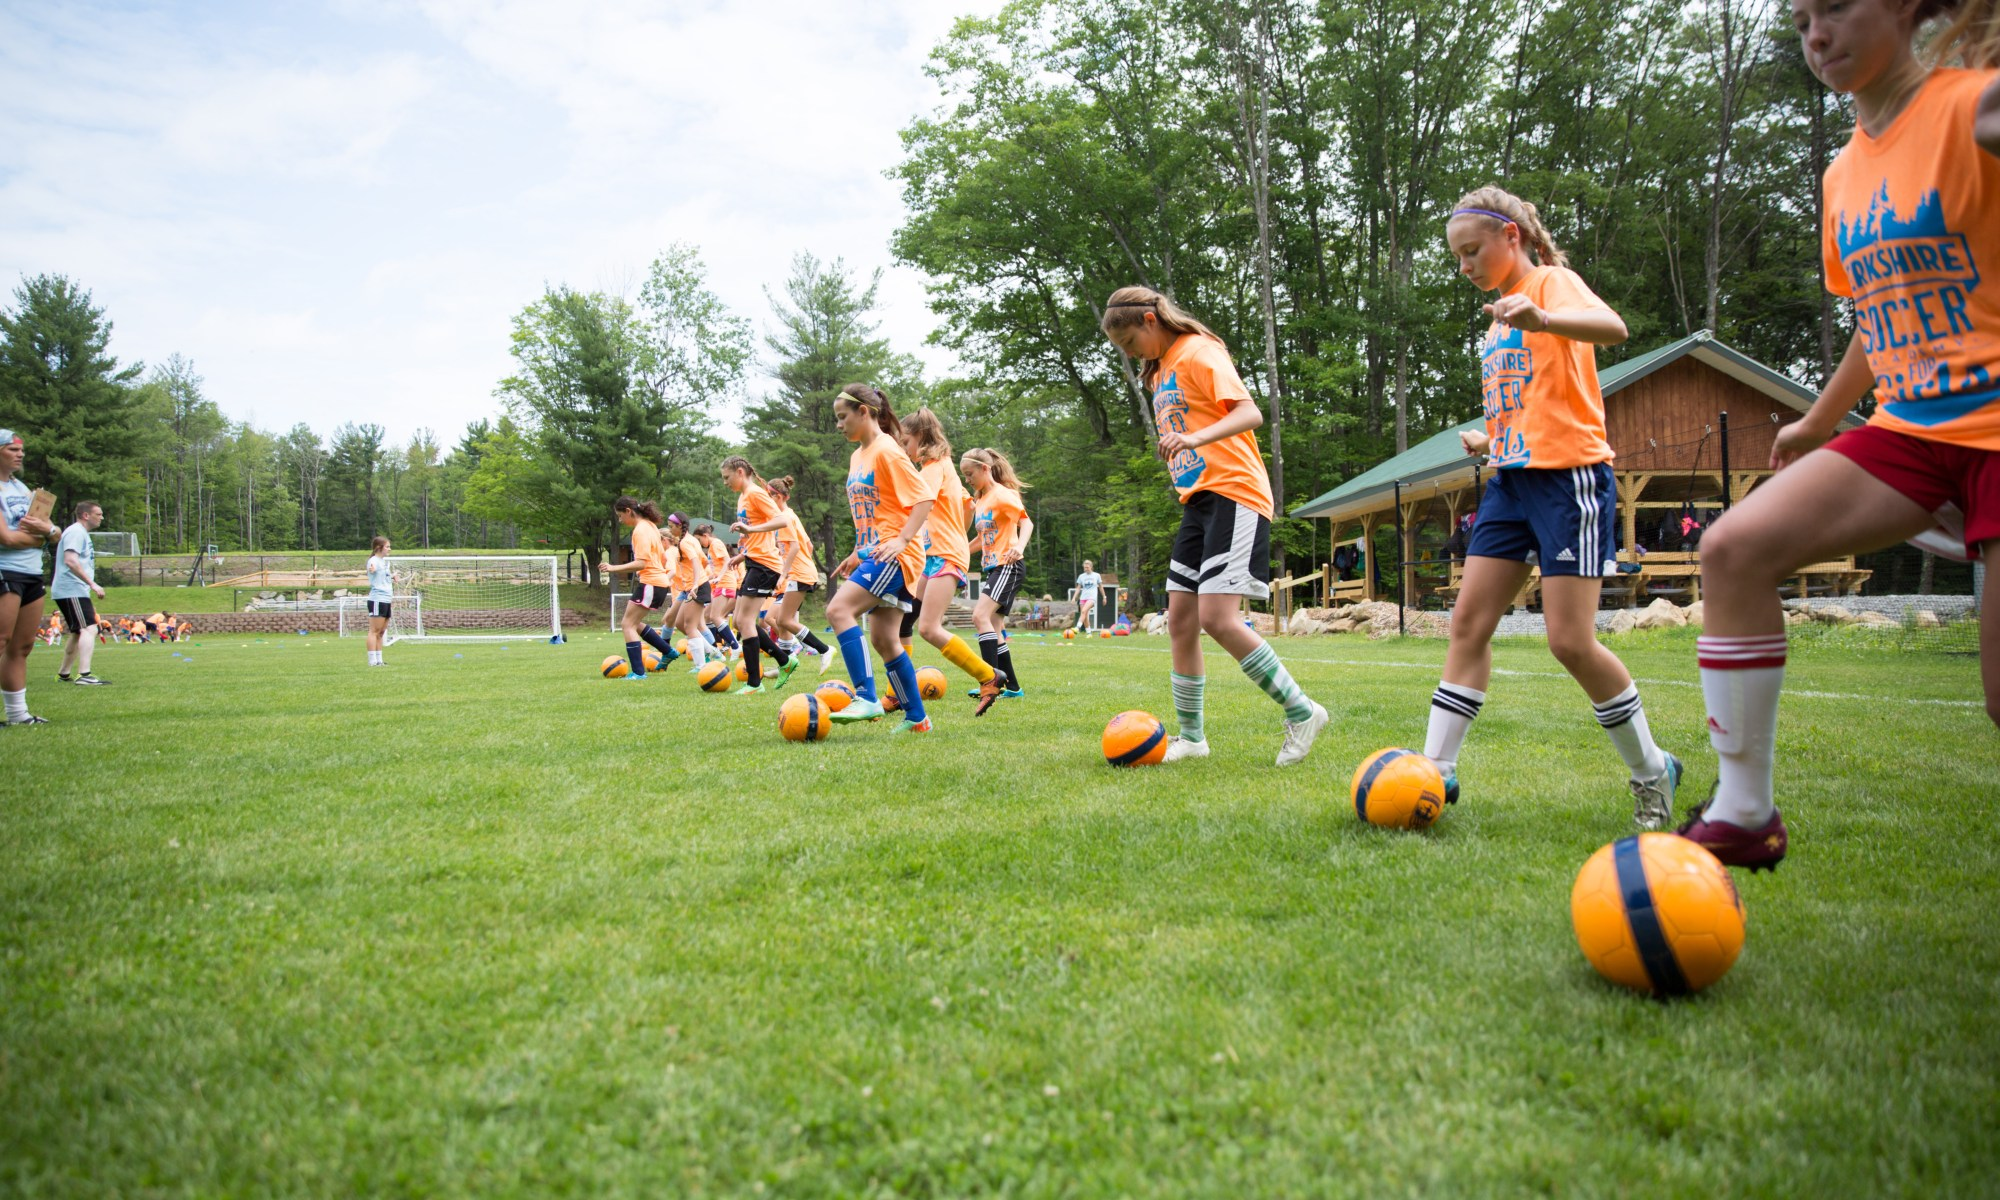 berkshire girls playing soccer at summer camp